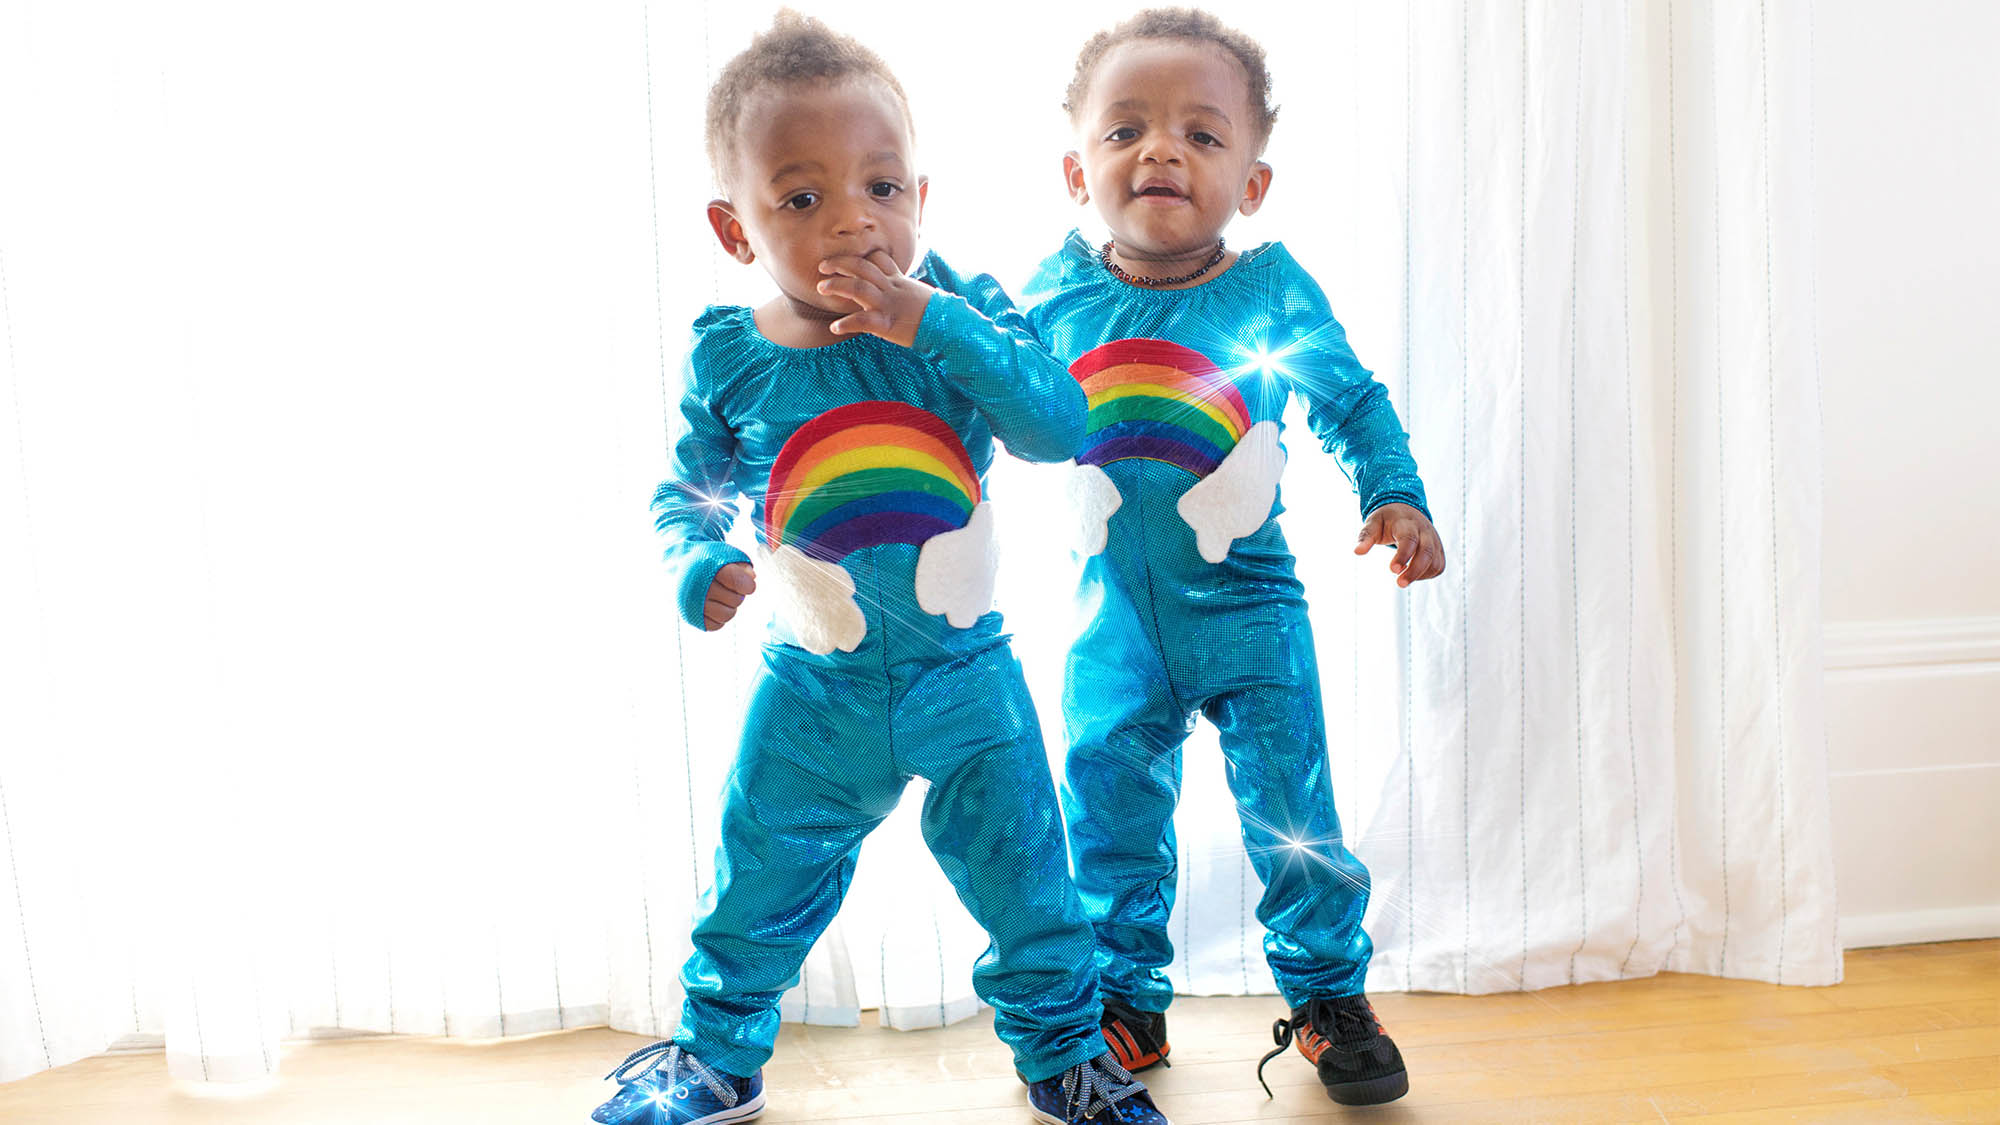 Two Toddler Boys Dressed in Matching Blue Jumpsuits with Rainbows